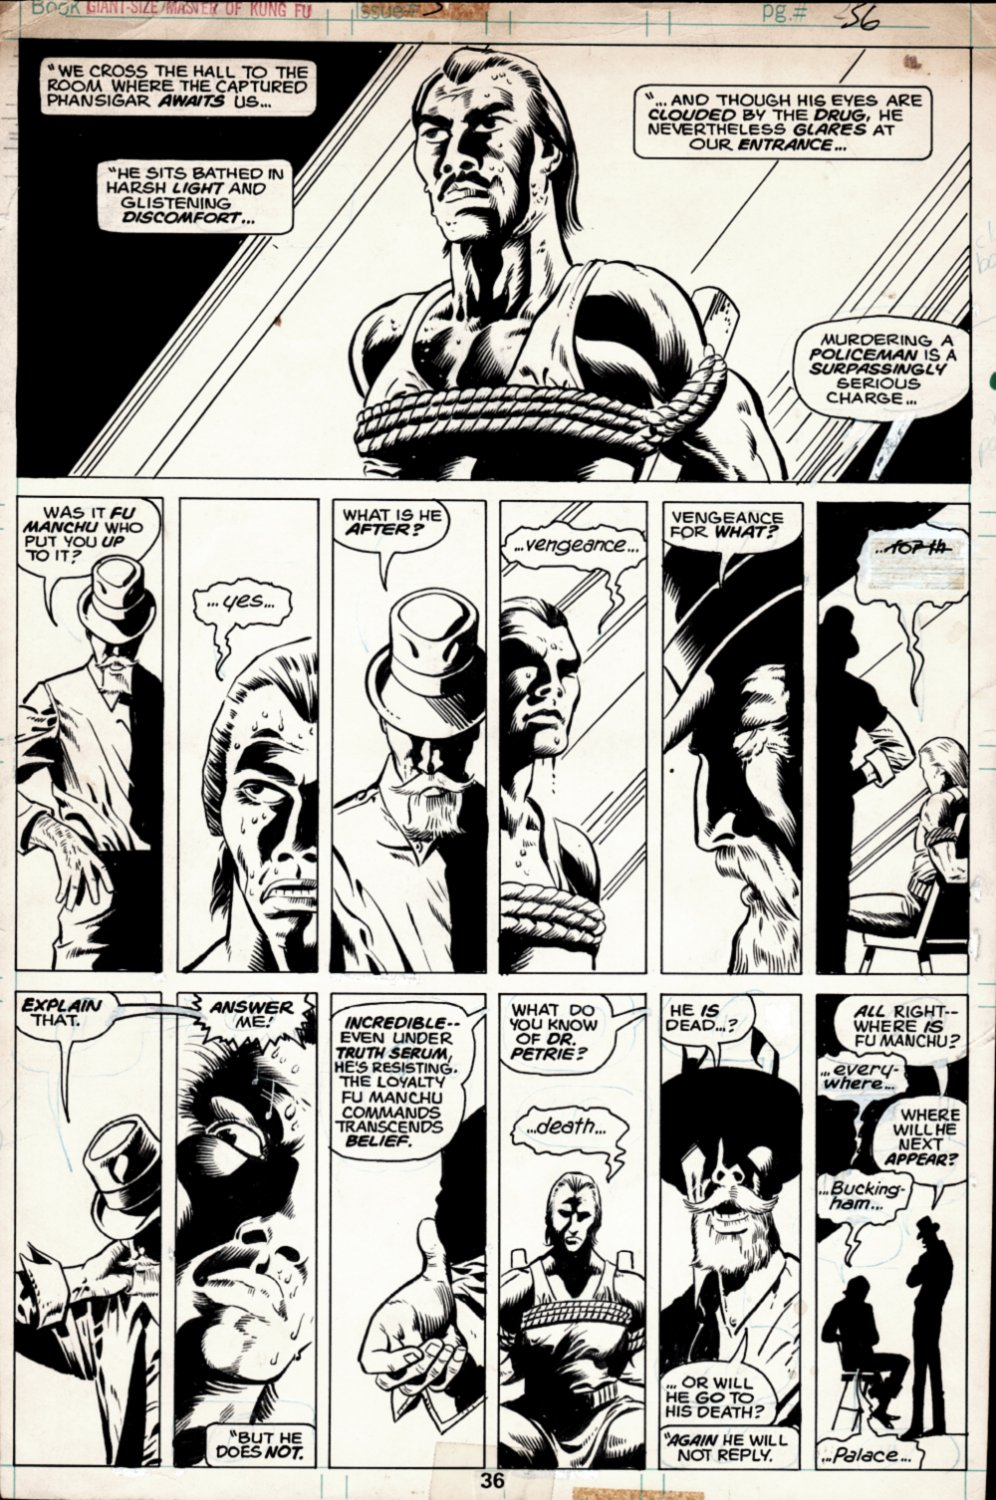 Giant-Size Master of Kung Fu #3 p 36 (Sir Denis Nayland Smith Interrogates The Evil Phansigar In Great Sequence!) 1974